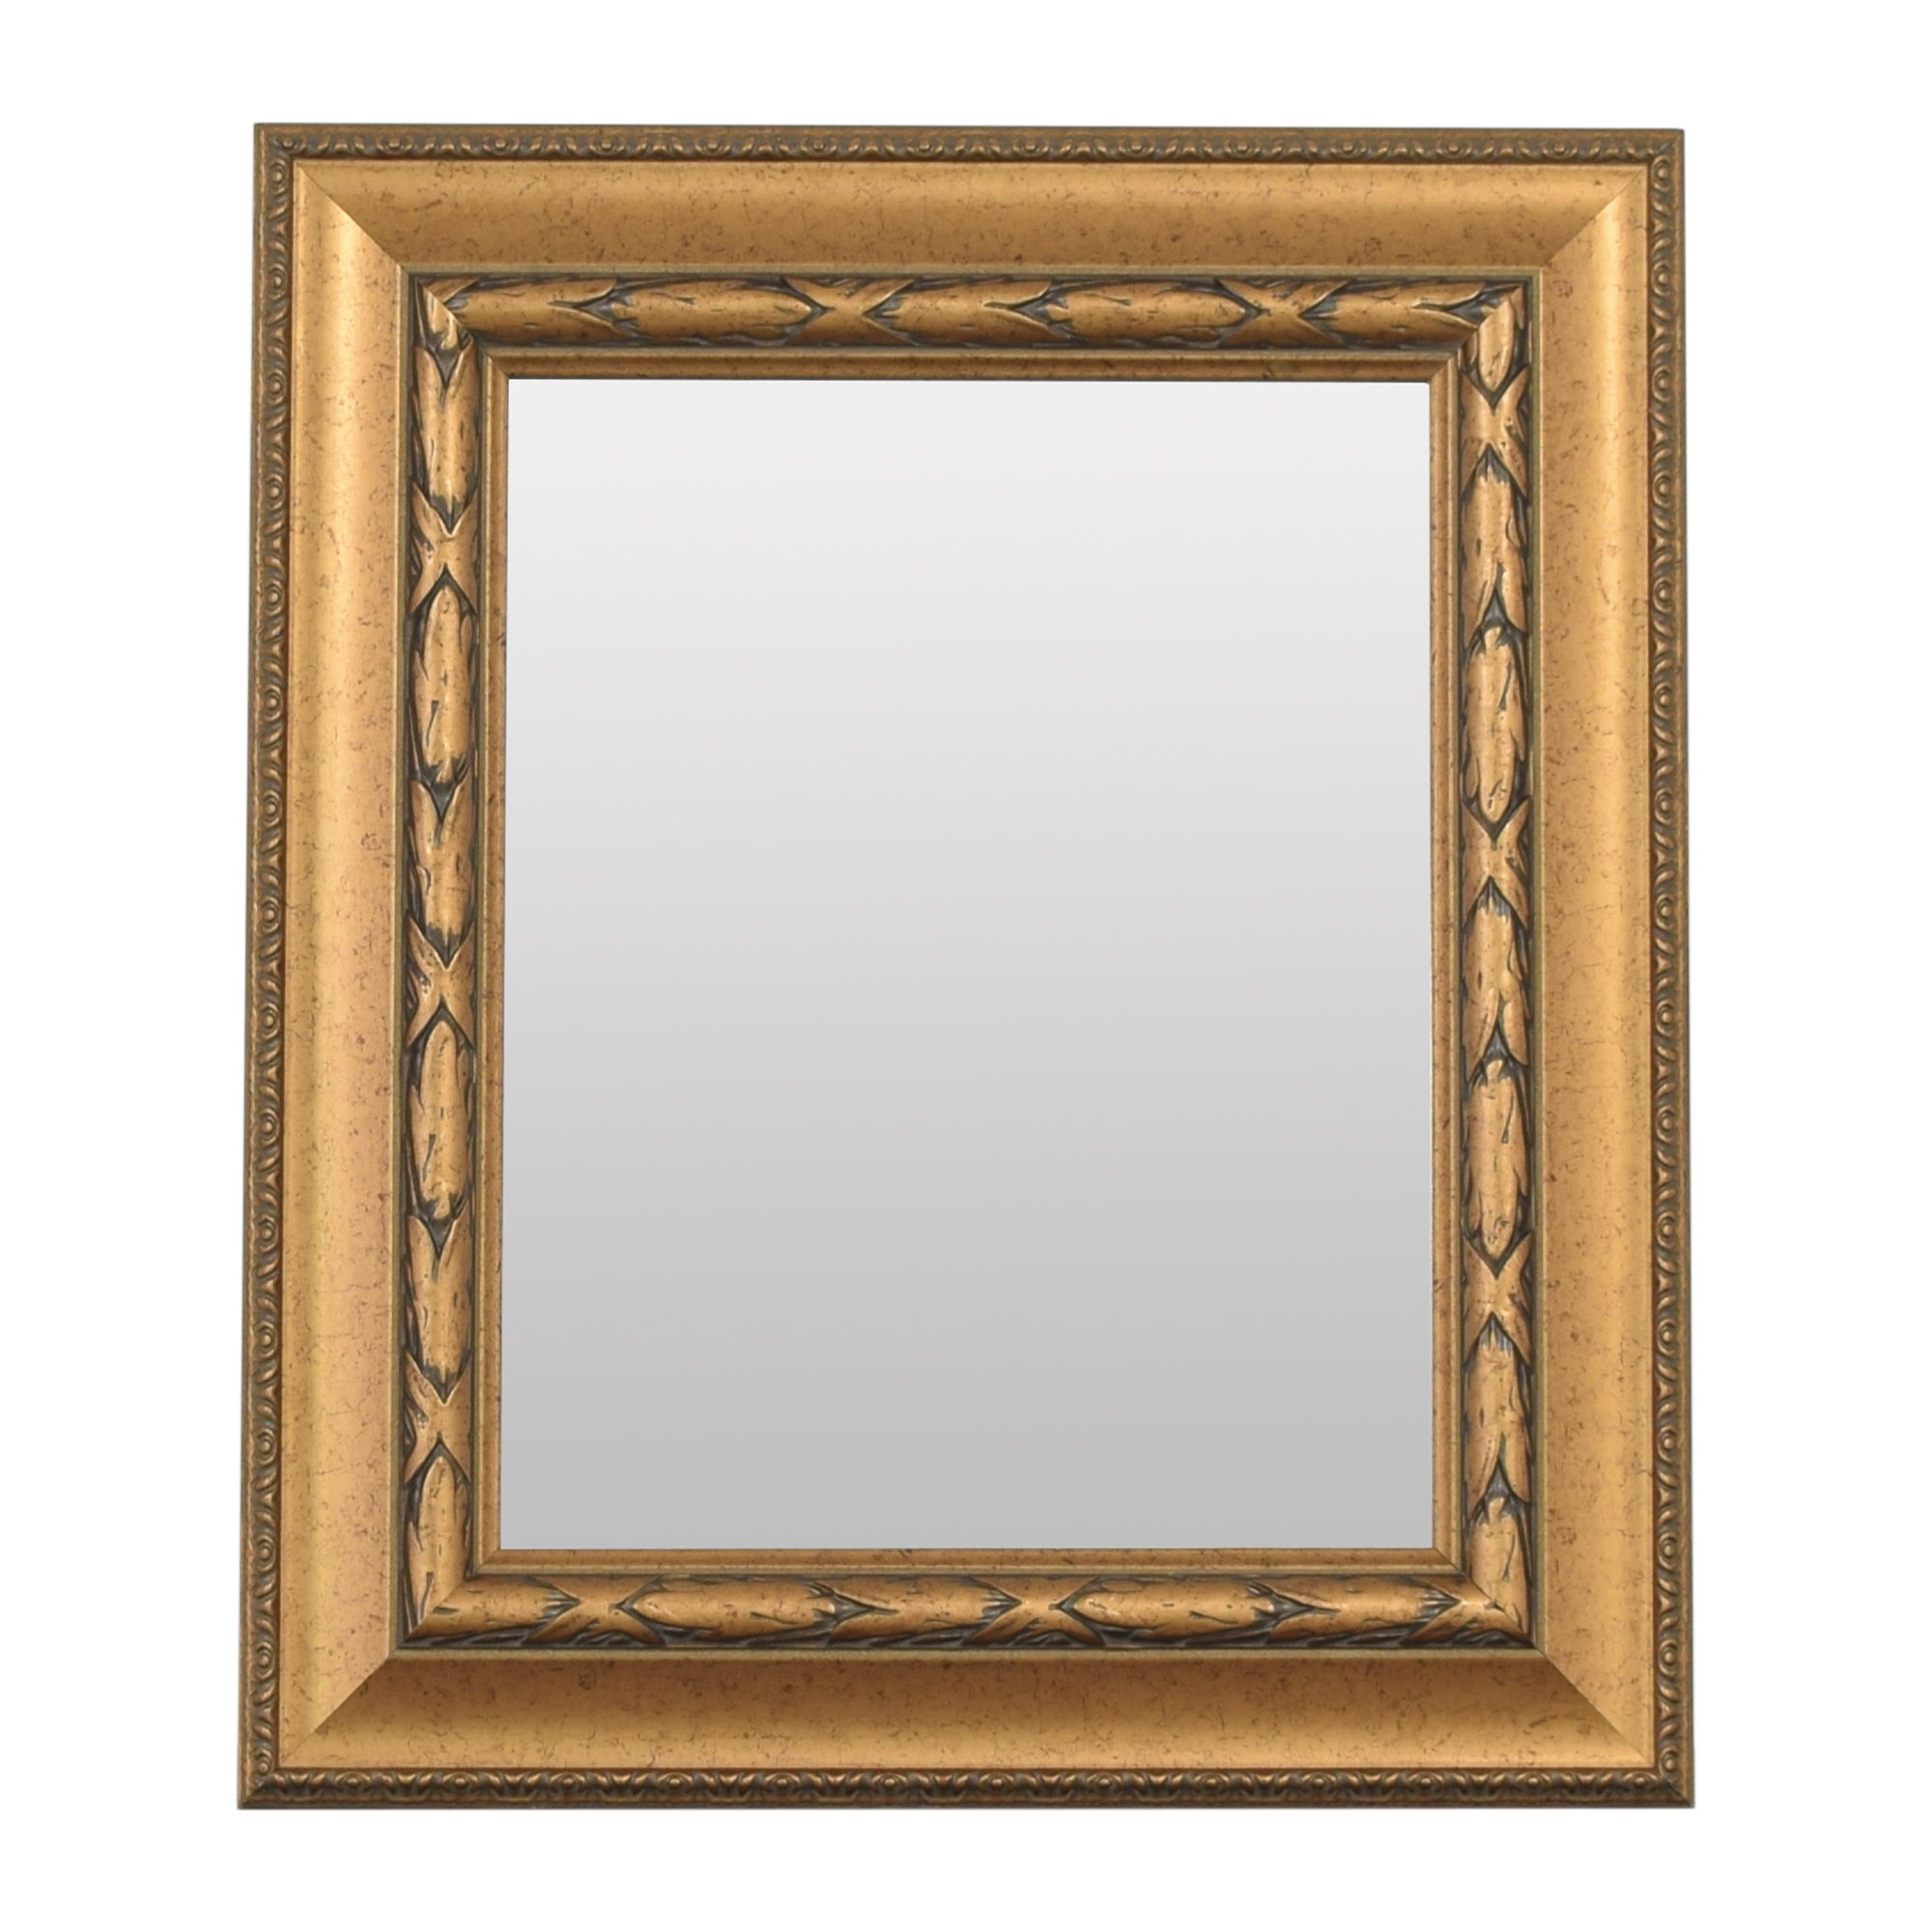 Decorative Framed Mirror dimensions